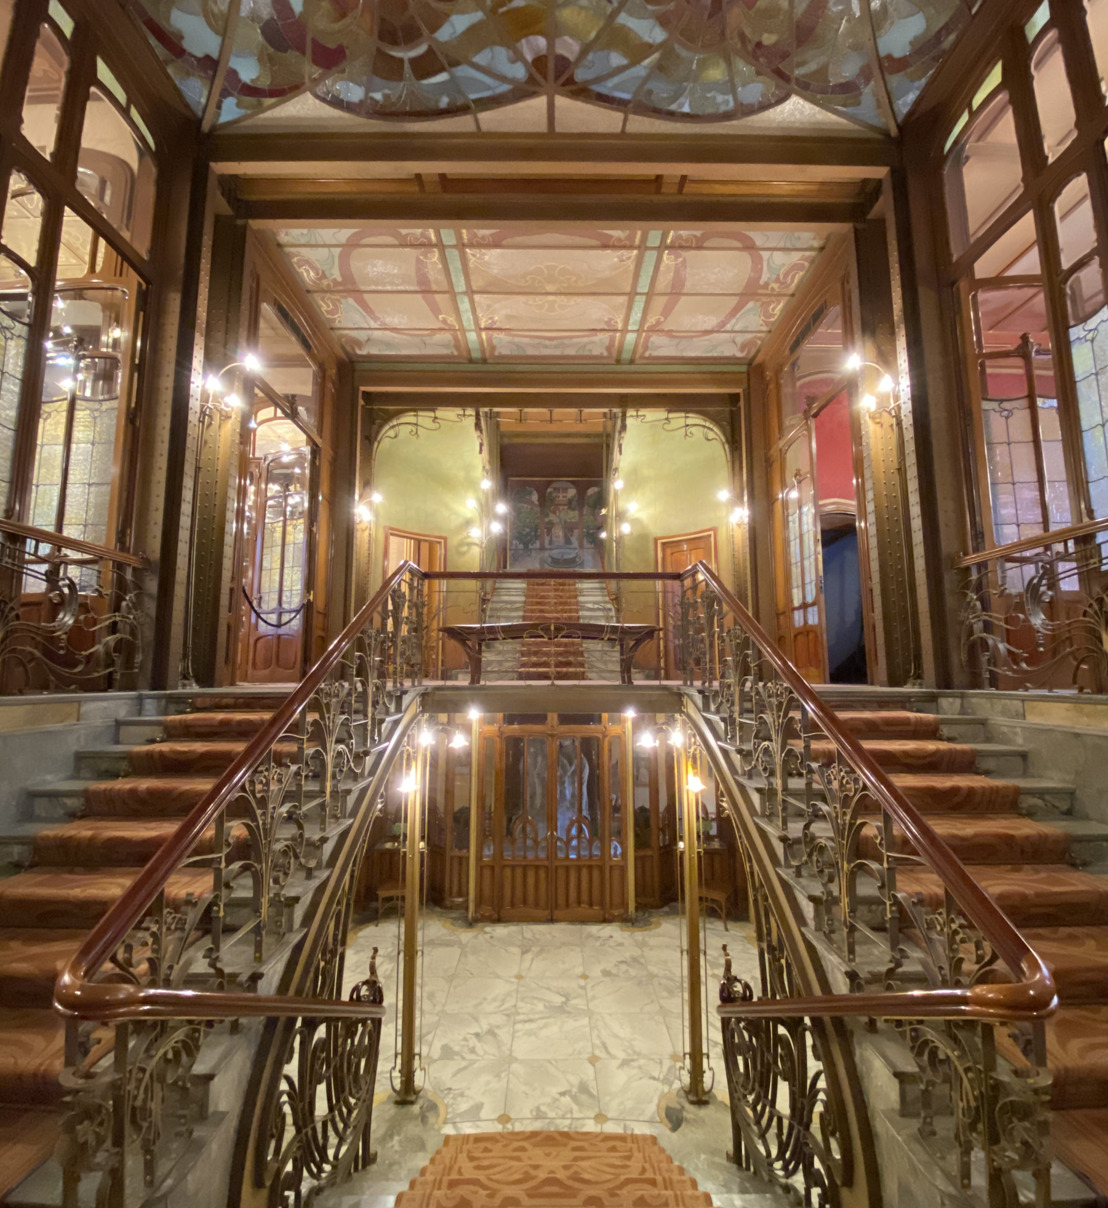 Hotel Solvay open to the public